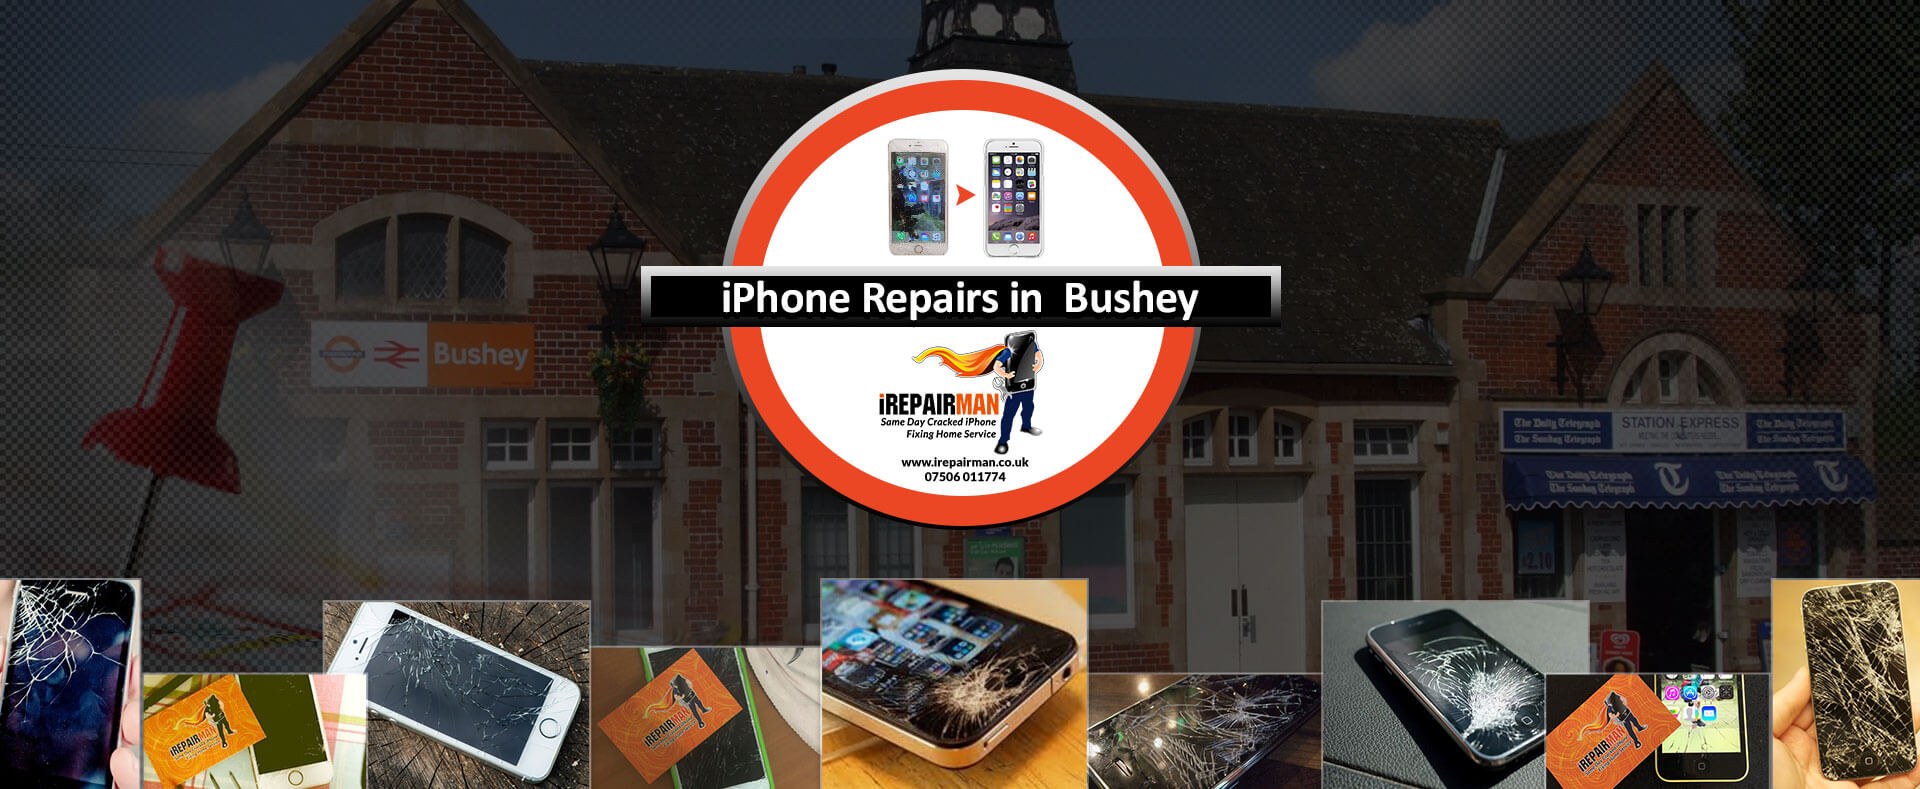 iPhone Repairs in Bushey